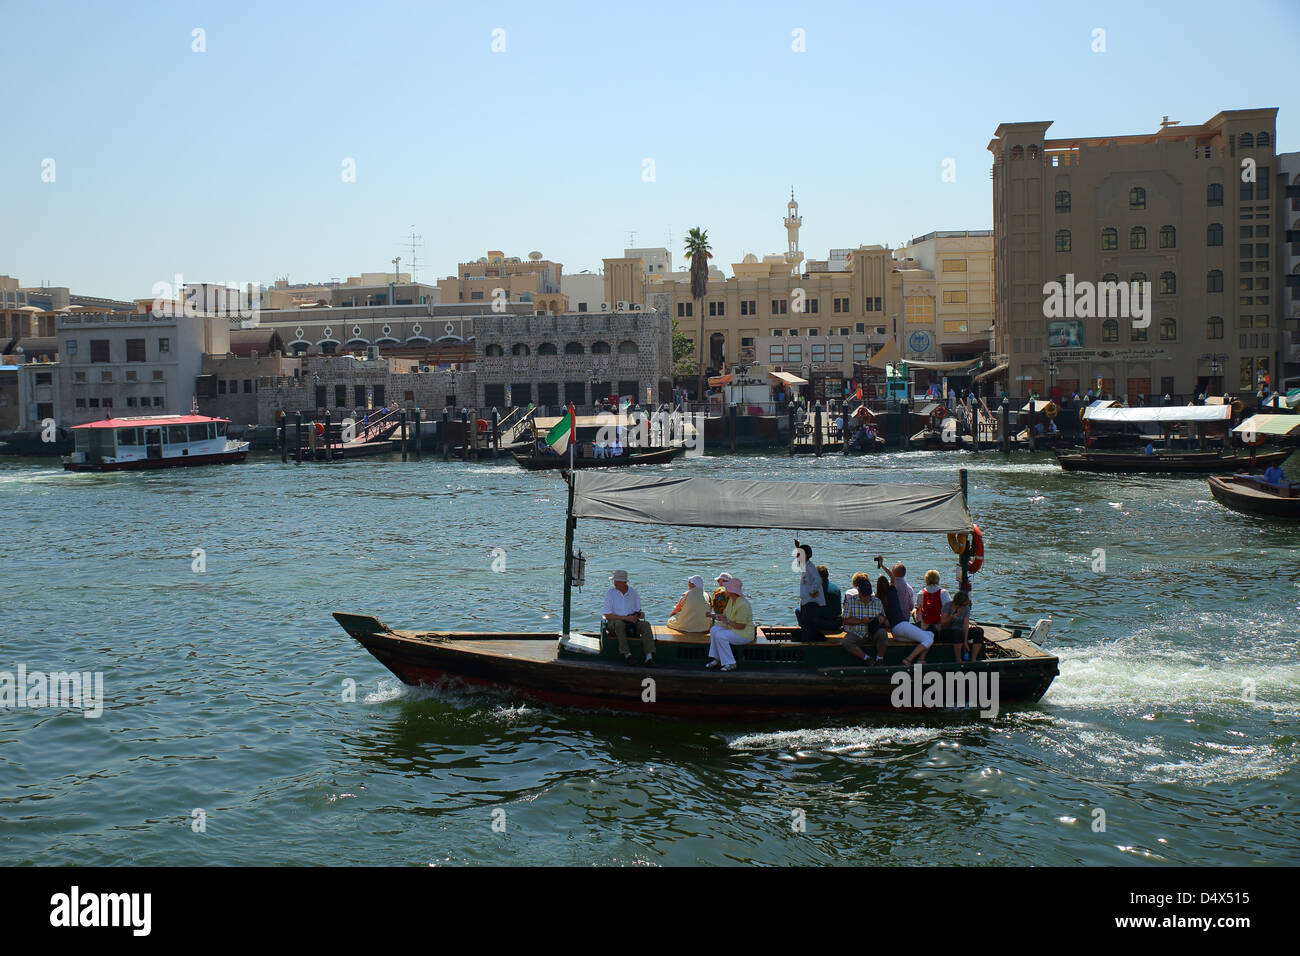 Abra traditionnel taxi de l'eau de traverser la crique de Dubaï, Émirats Arabes Unis Photo Stock